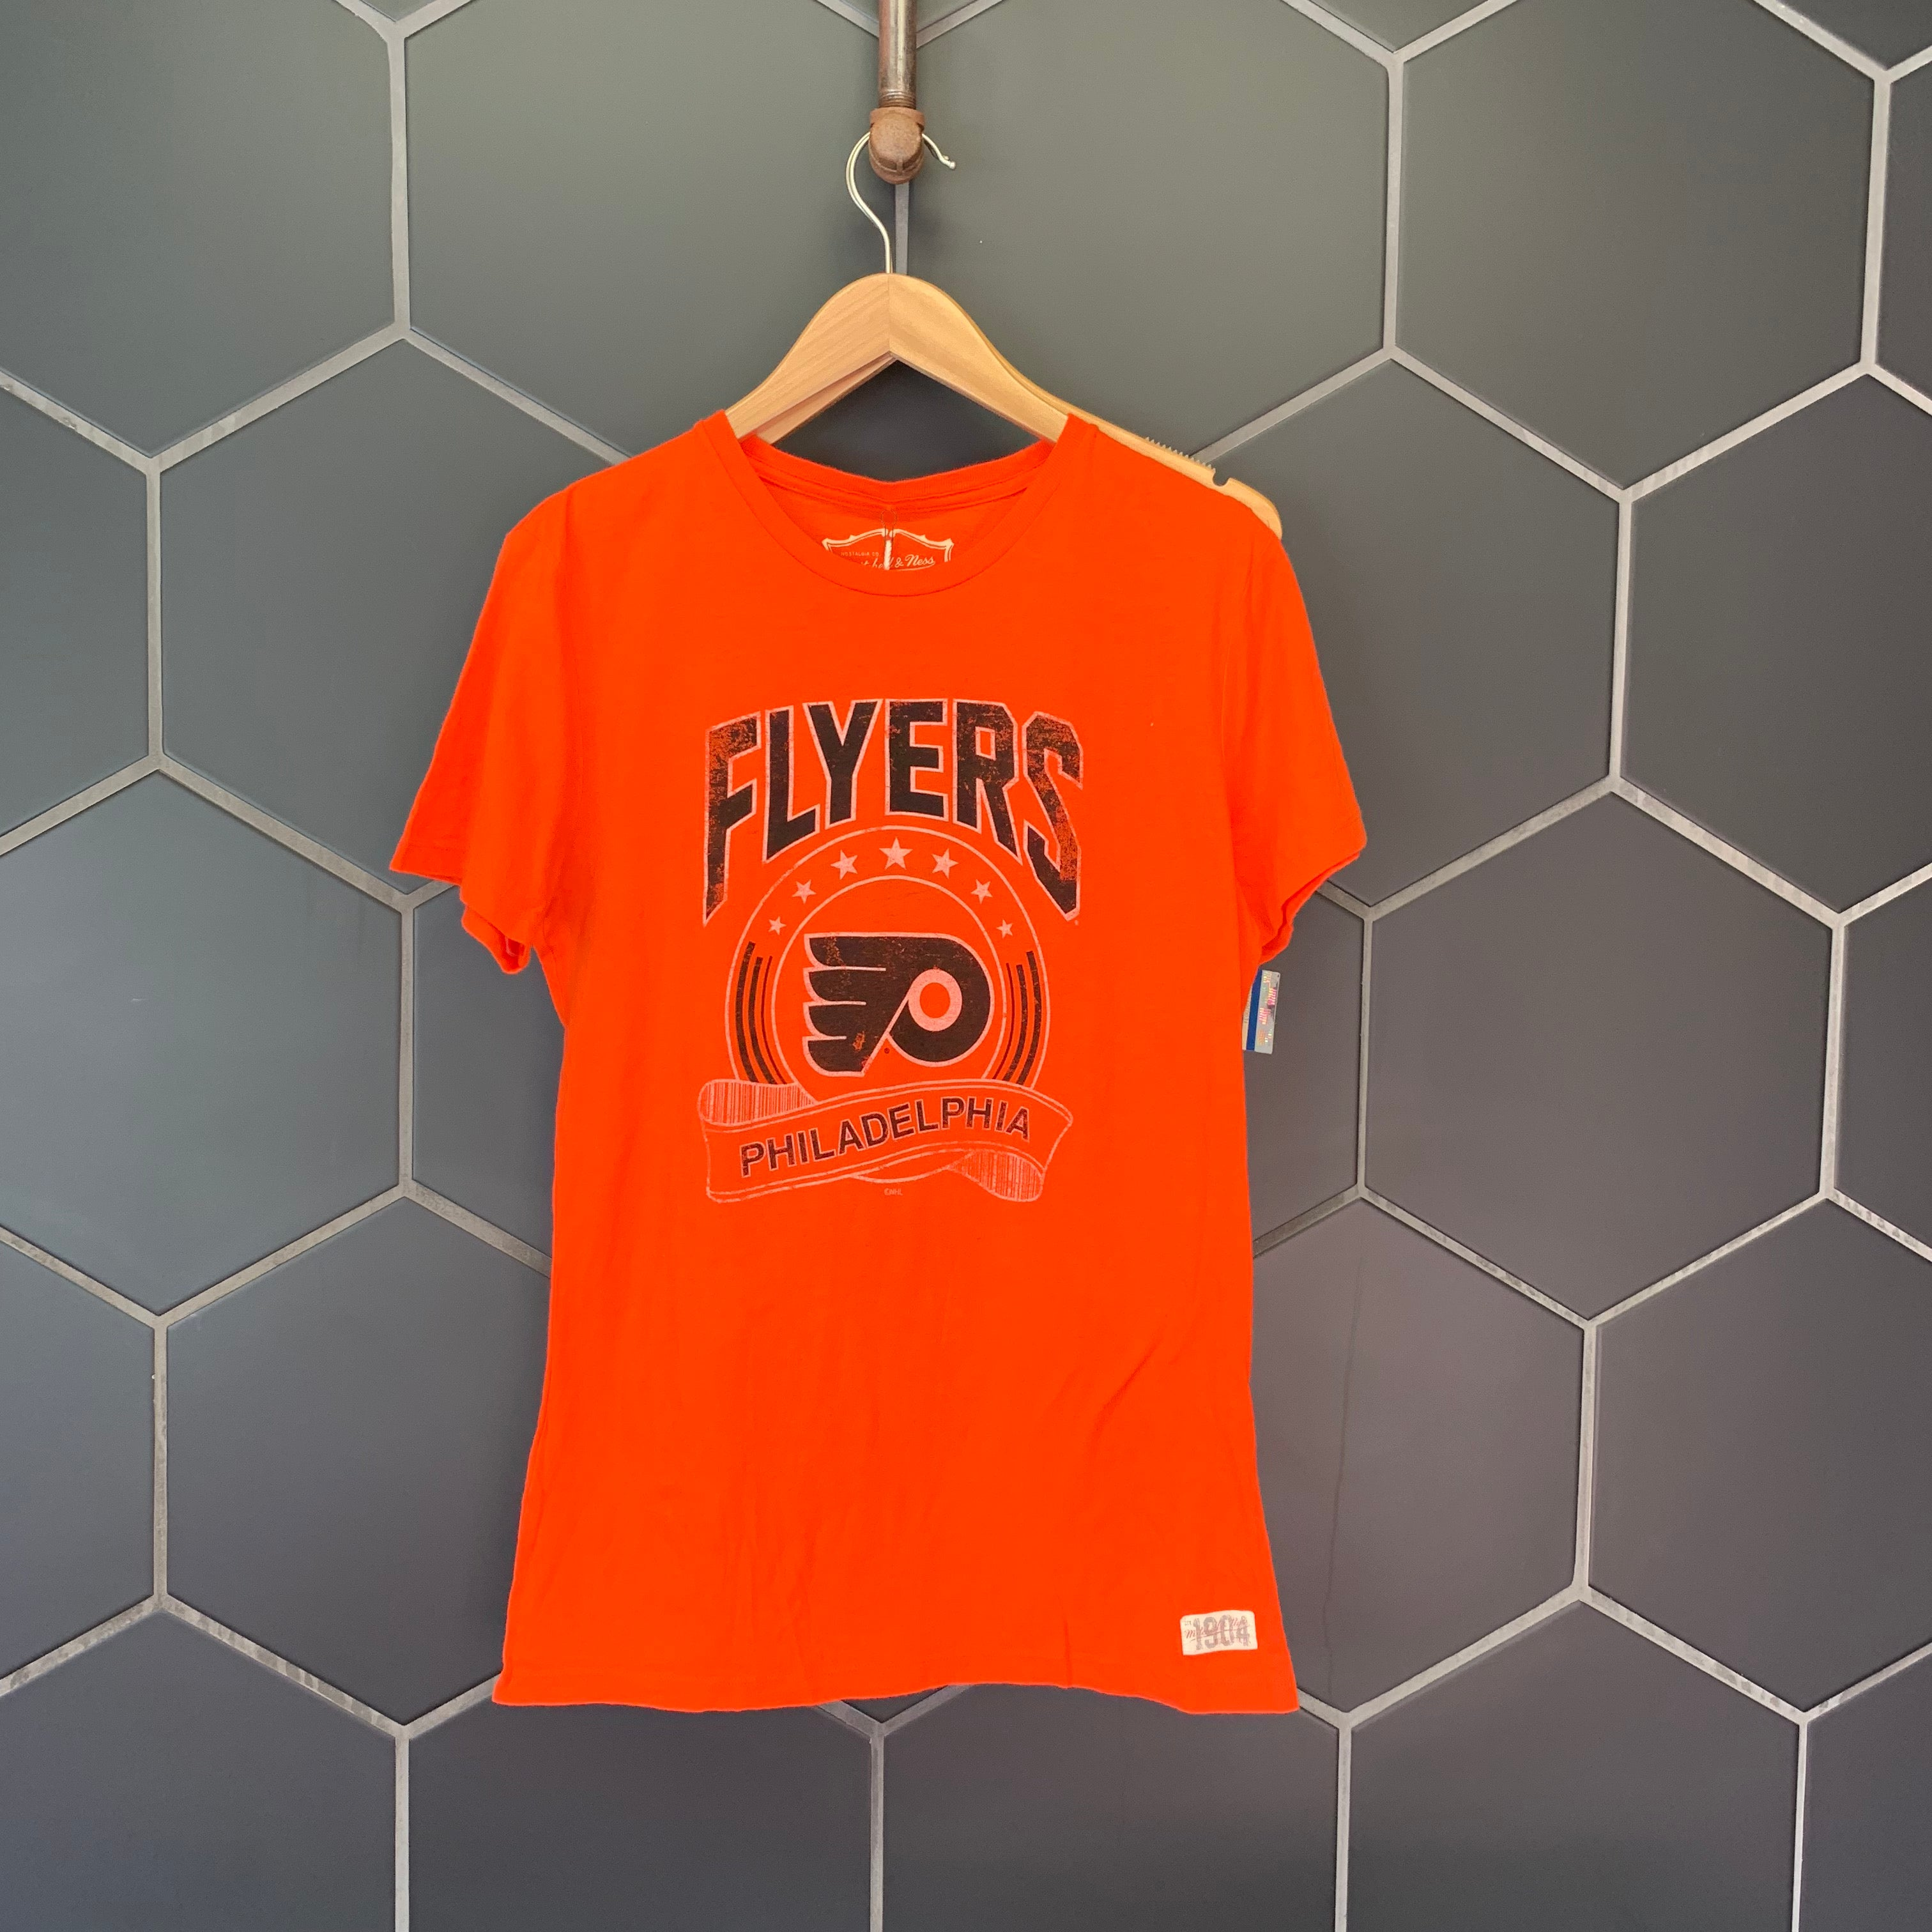 New! Womens Mitchell & Ness Philadelphia Flyers NHL Hockey Orange Black T-Shirt Size XL